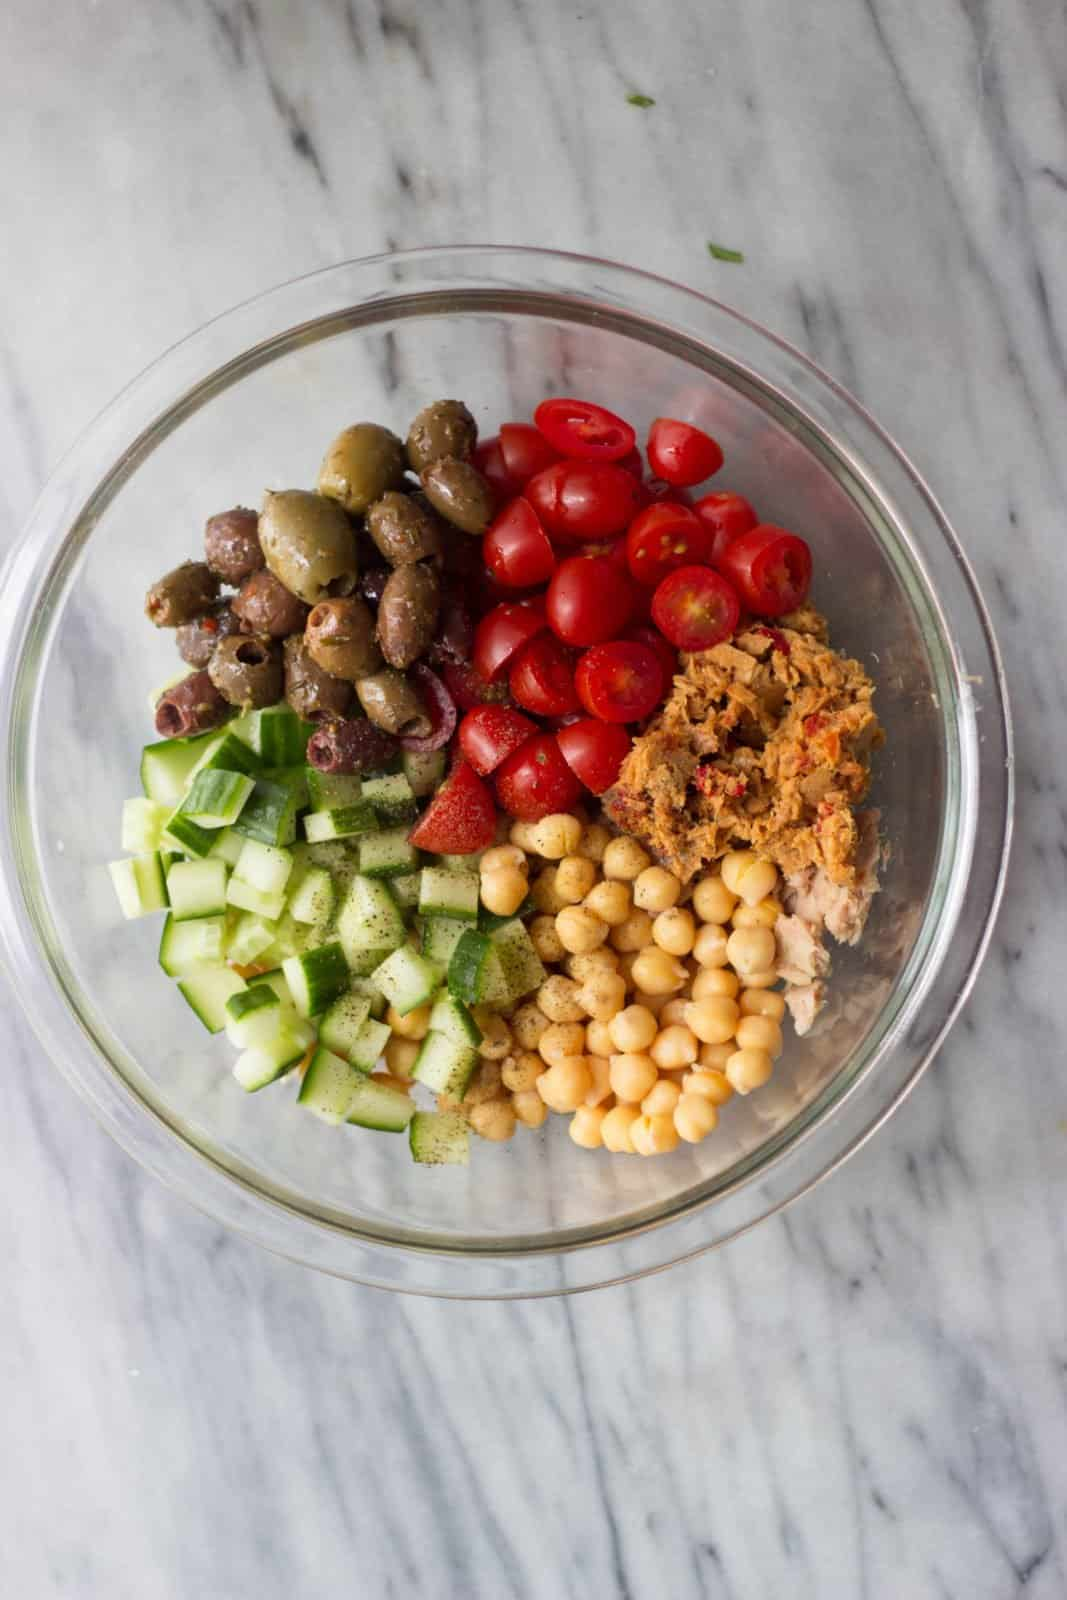 A glass mixing bowl with salad ingredients as a must for setting yourself up for success in the kitchen